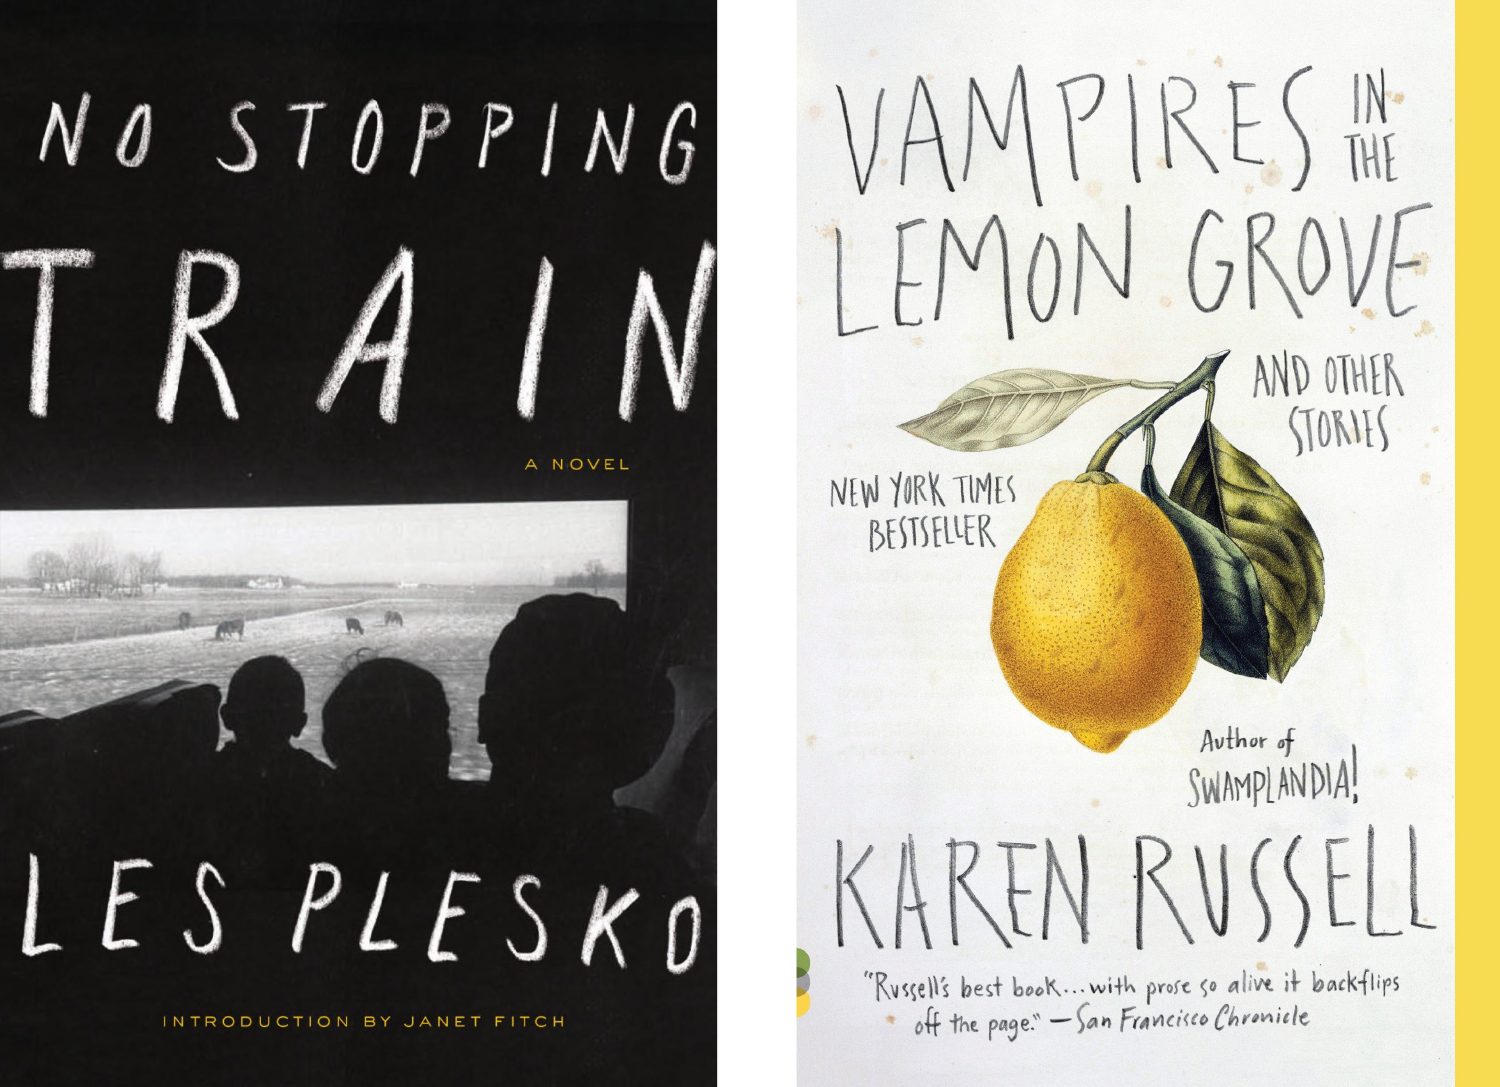 No Stopping Train and Vampires in the Lemon Grove covers